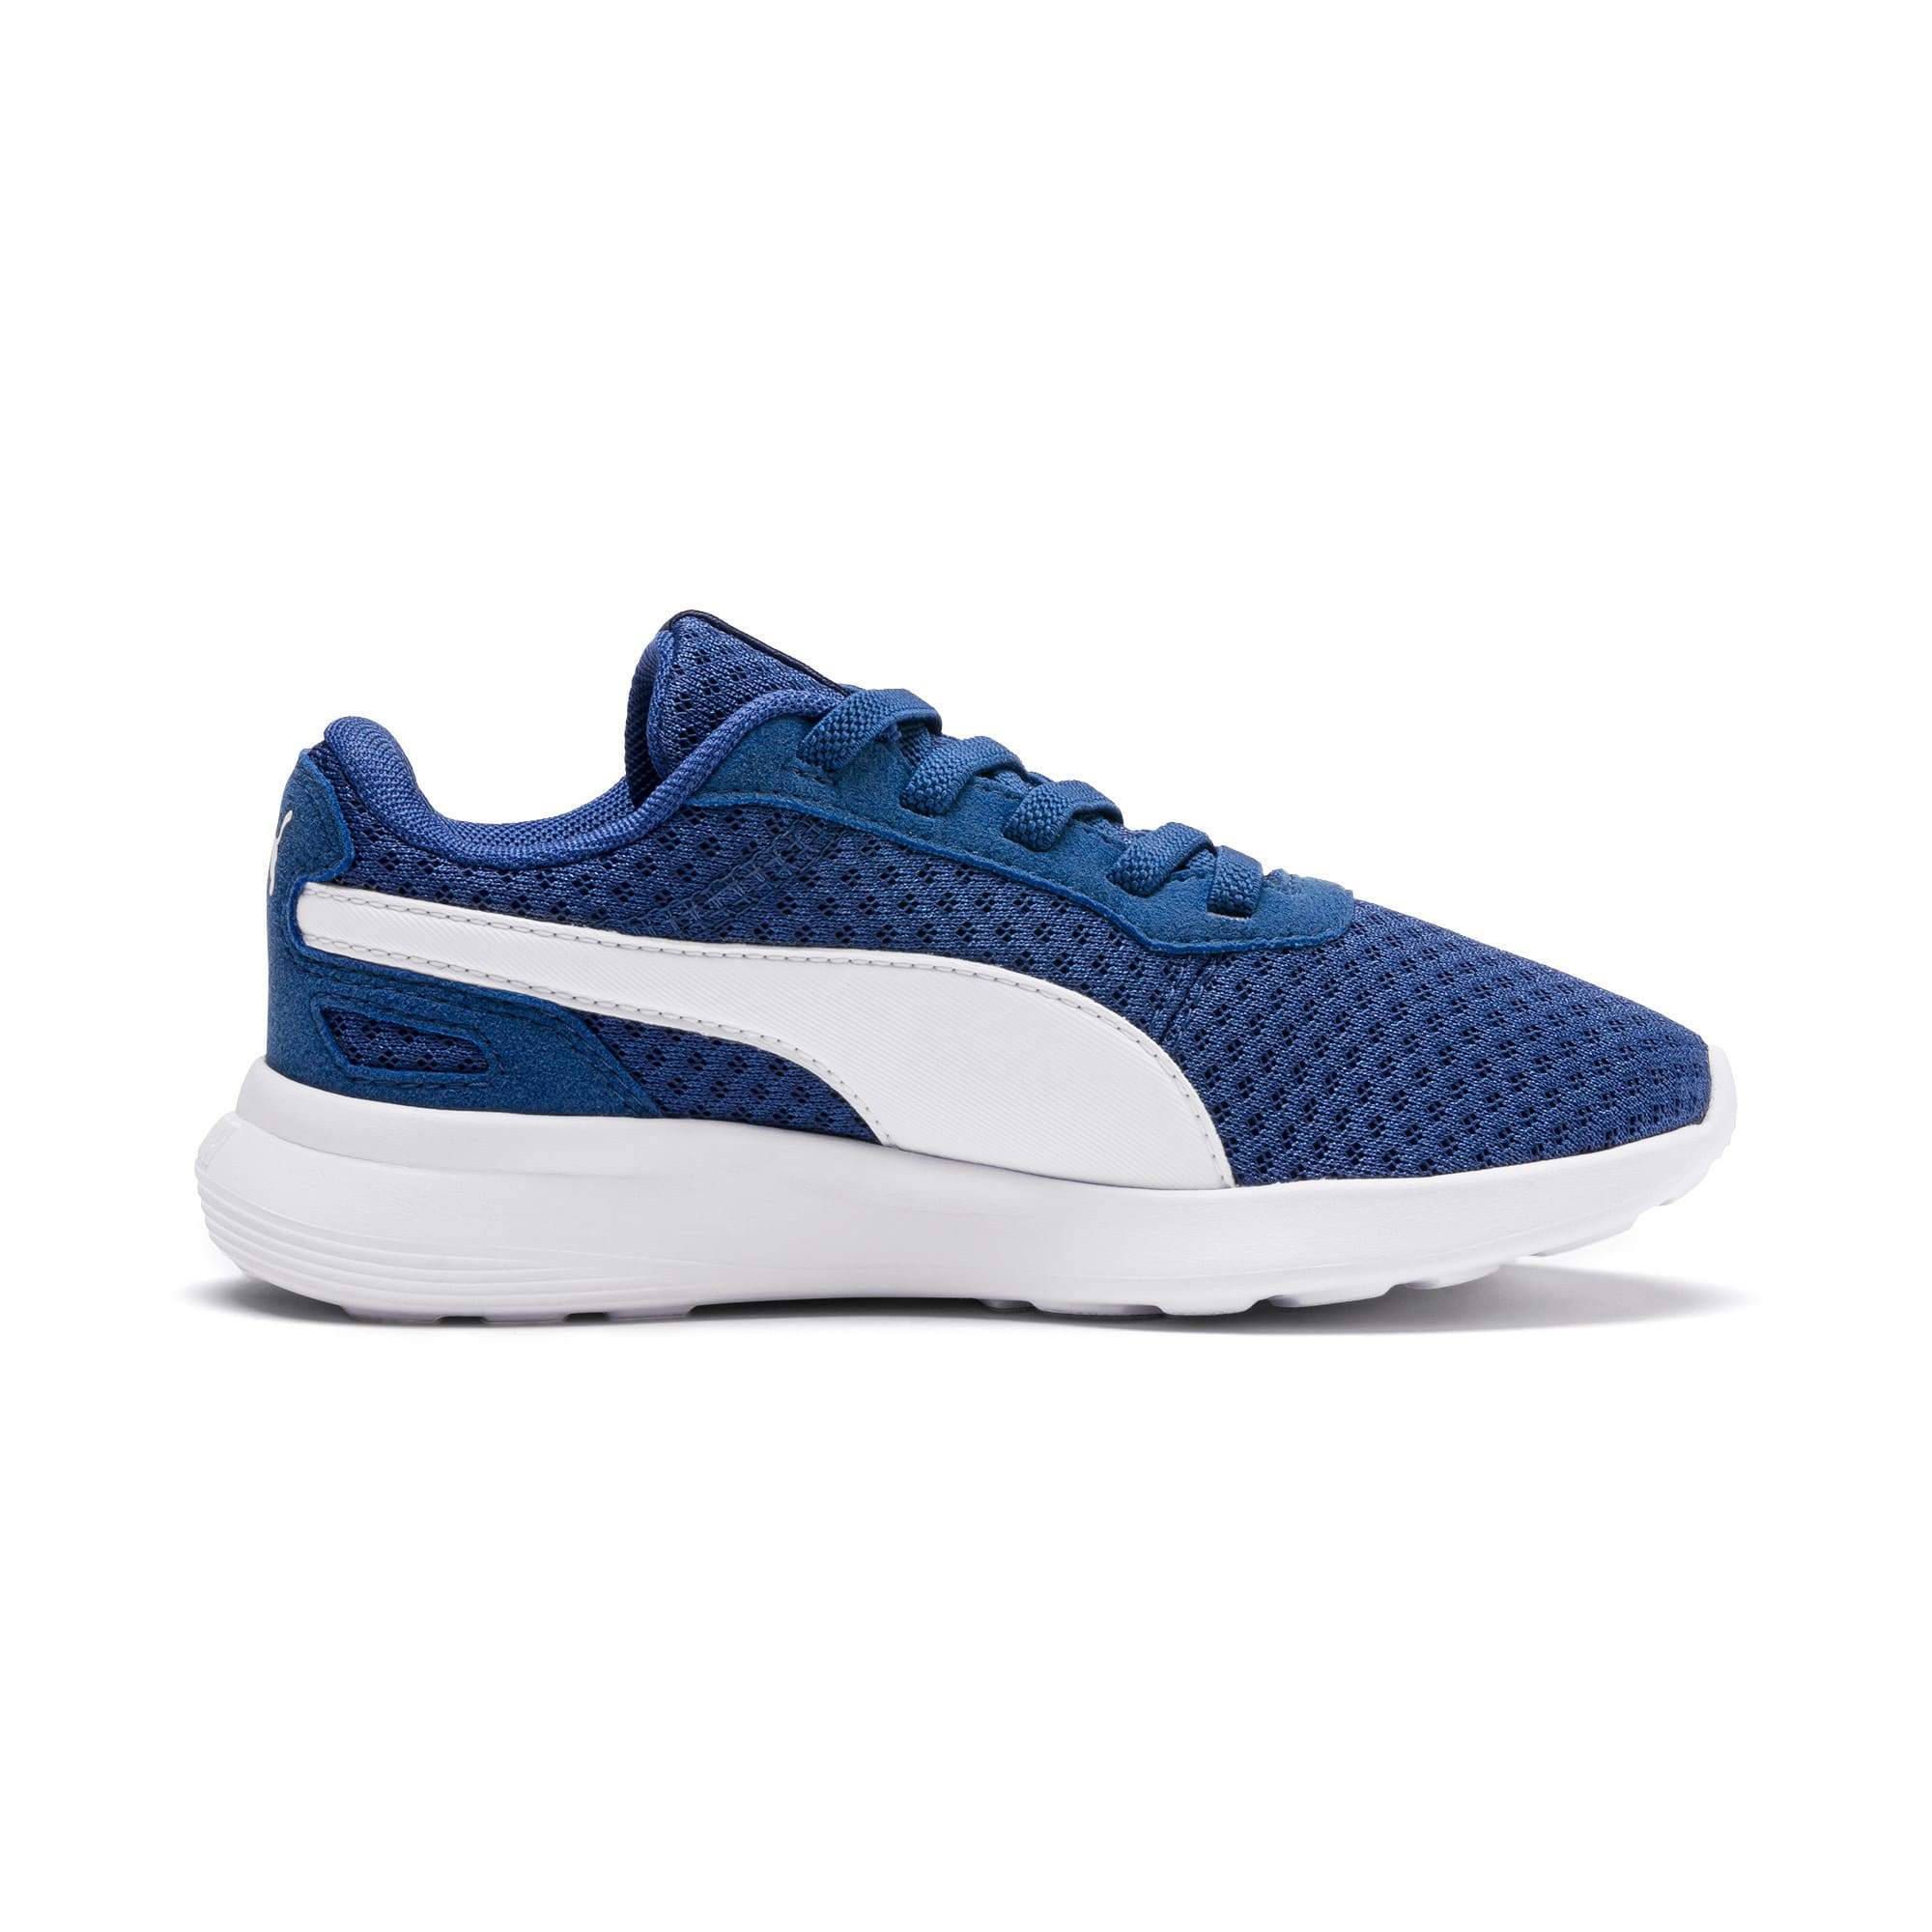 Zapatos deportivos ST Activate PS, Galaxy Blue-Puma White, grande